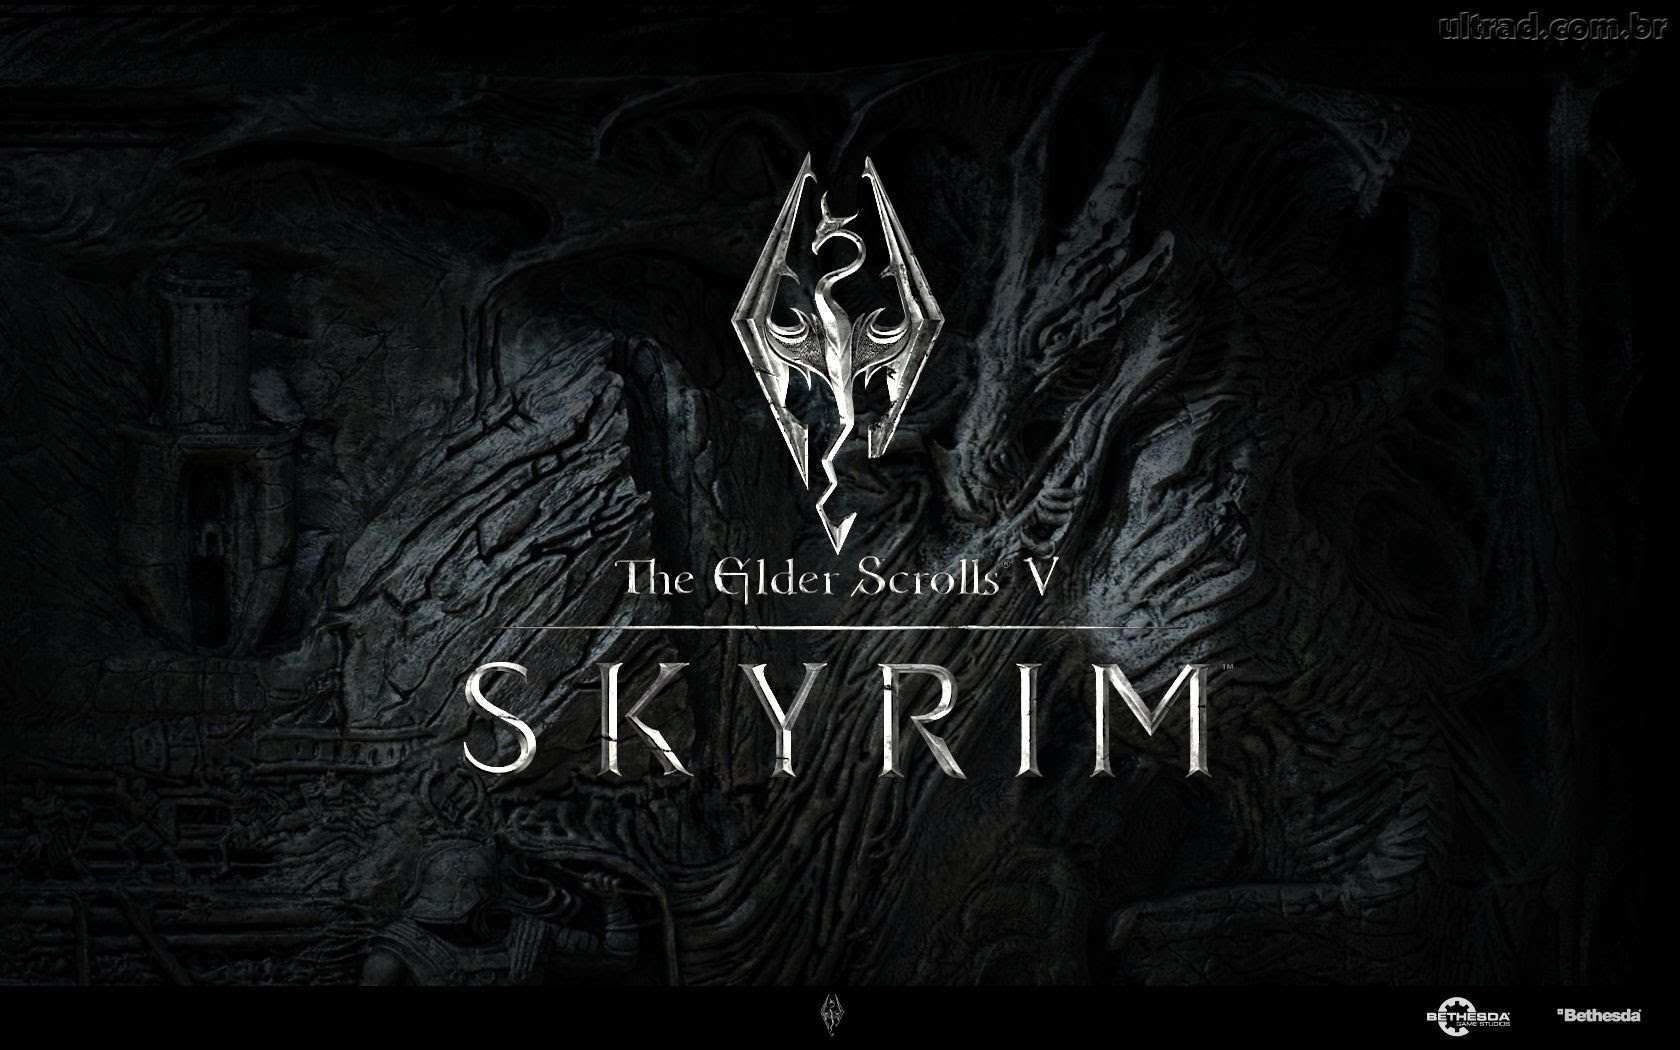 The Elder Scrolls V: Skyrim ключ Steam